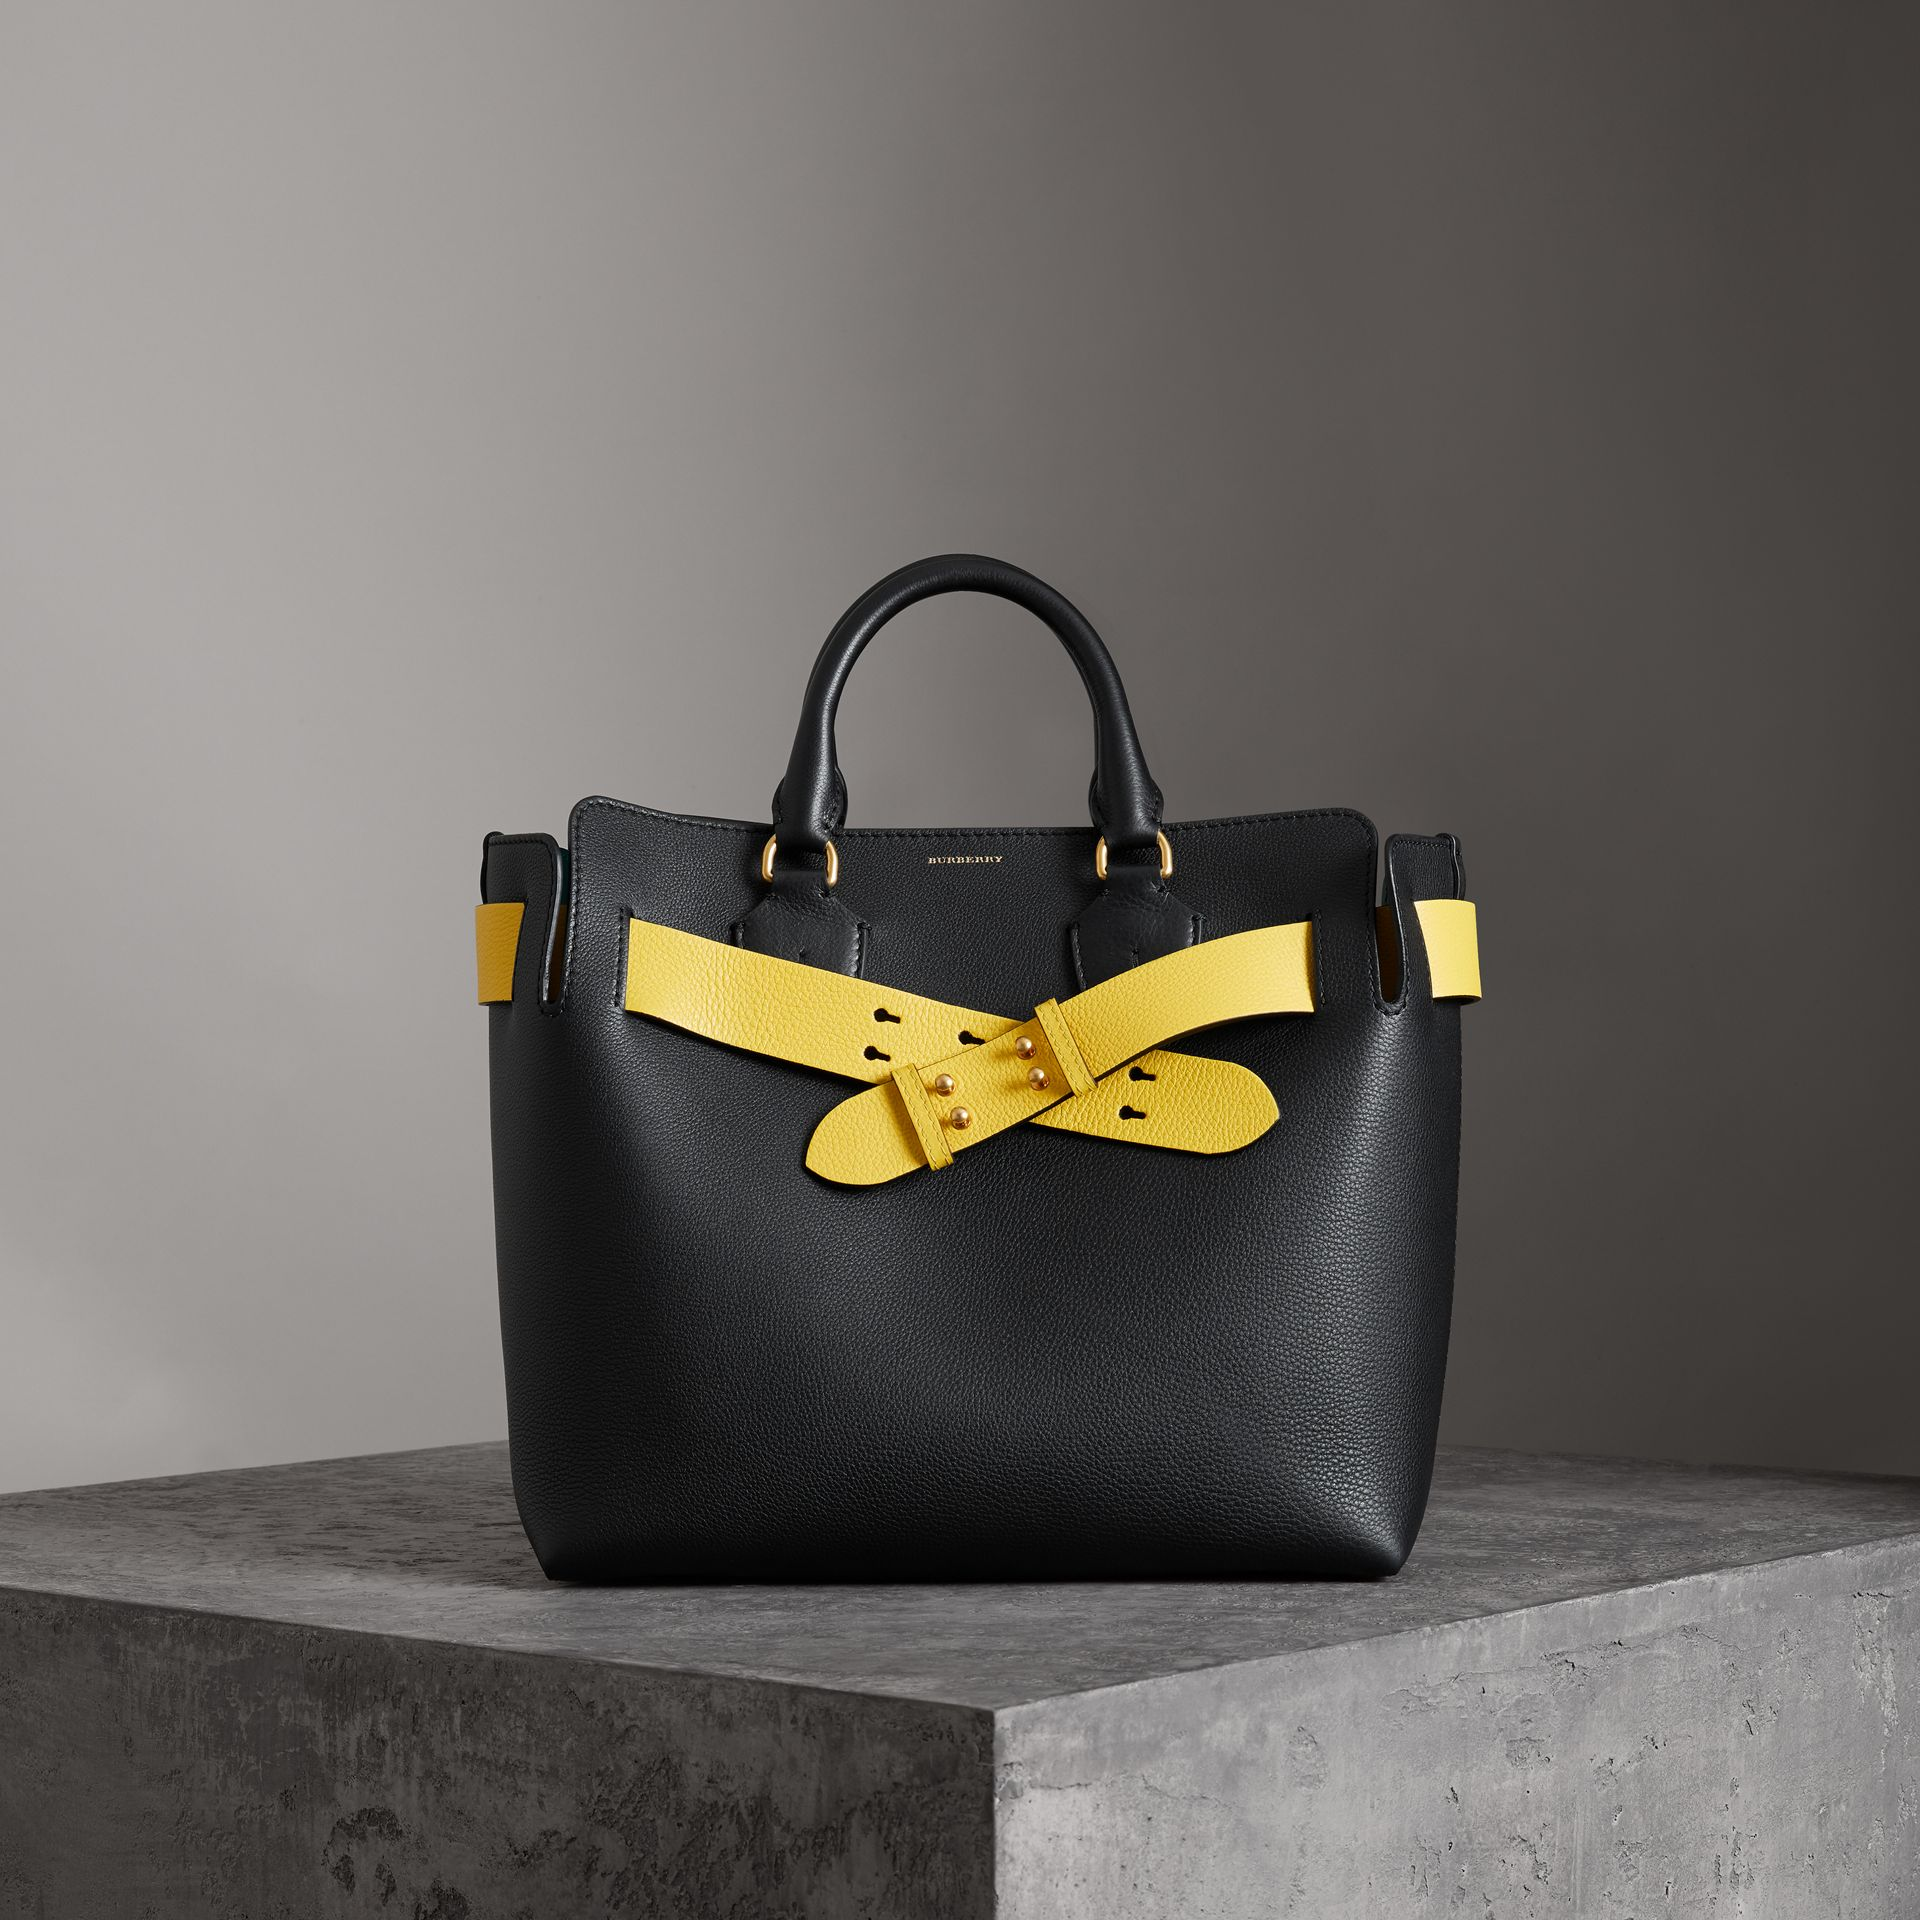 Sac The Belt moyen en cuir (Noir) - Femme | Burberry Canada - photo de la galerie 0